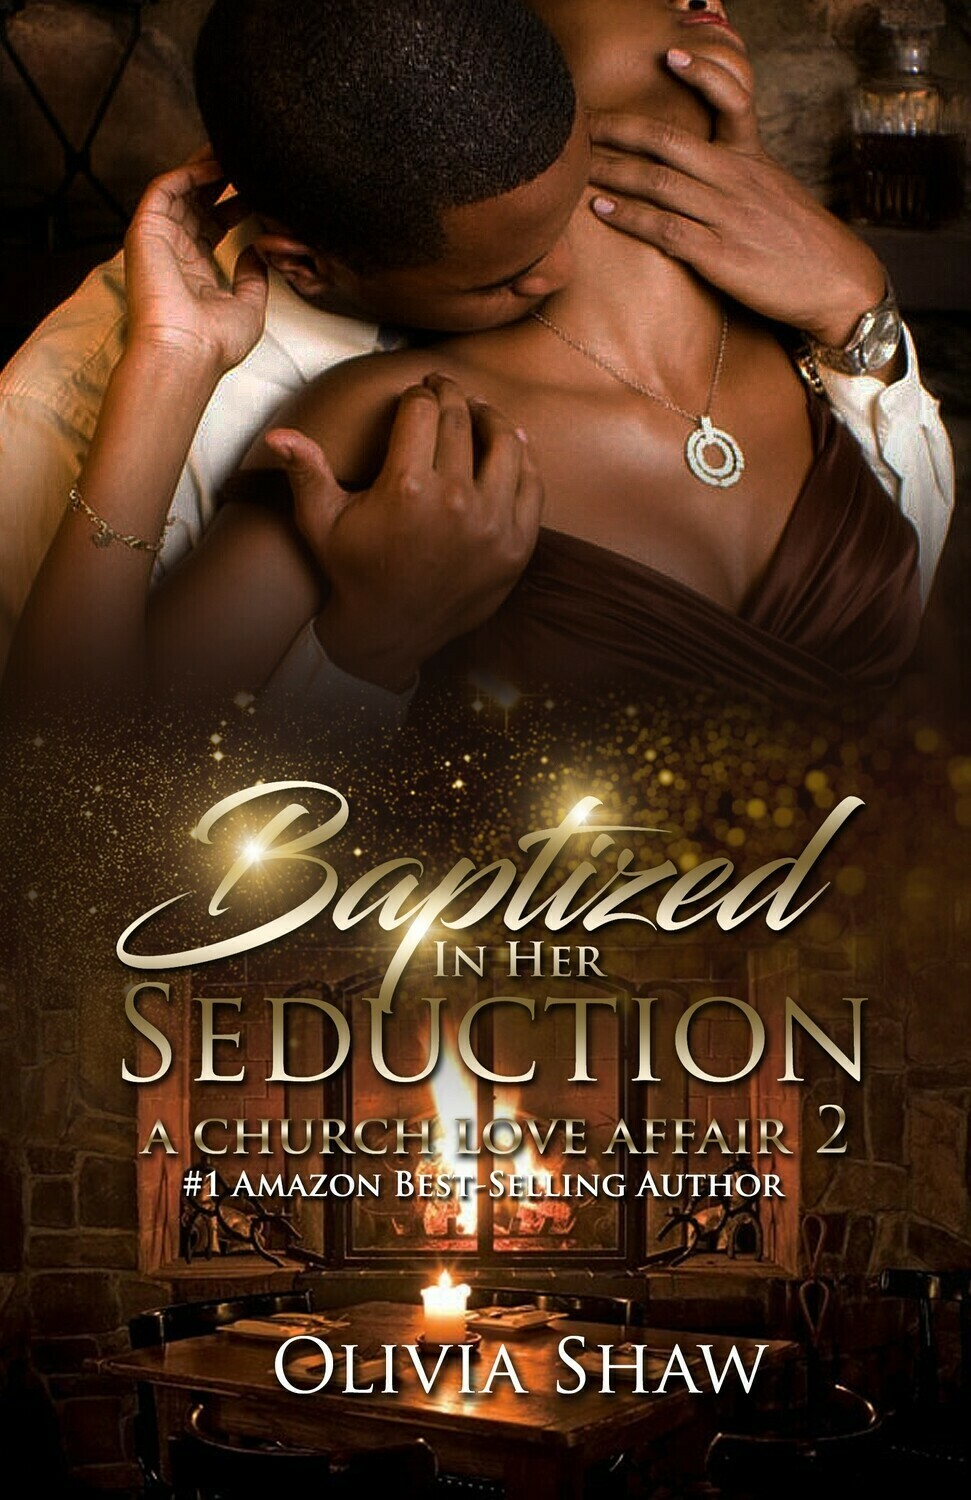 Baptized in Her Seduction: A Church Love Affair 2 - PREORDER ONLY//FALL 2021